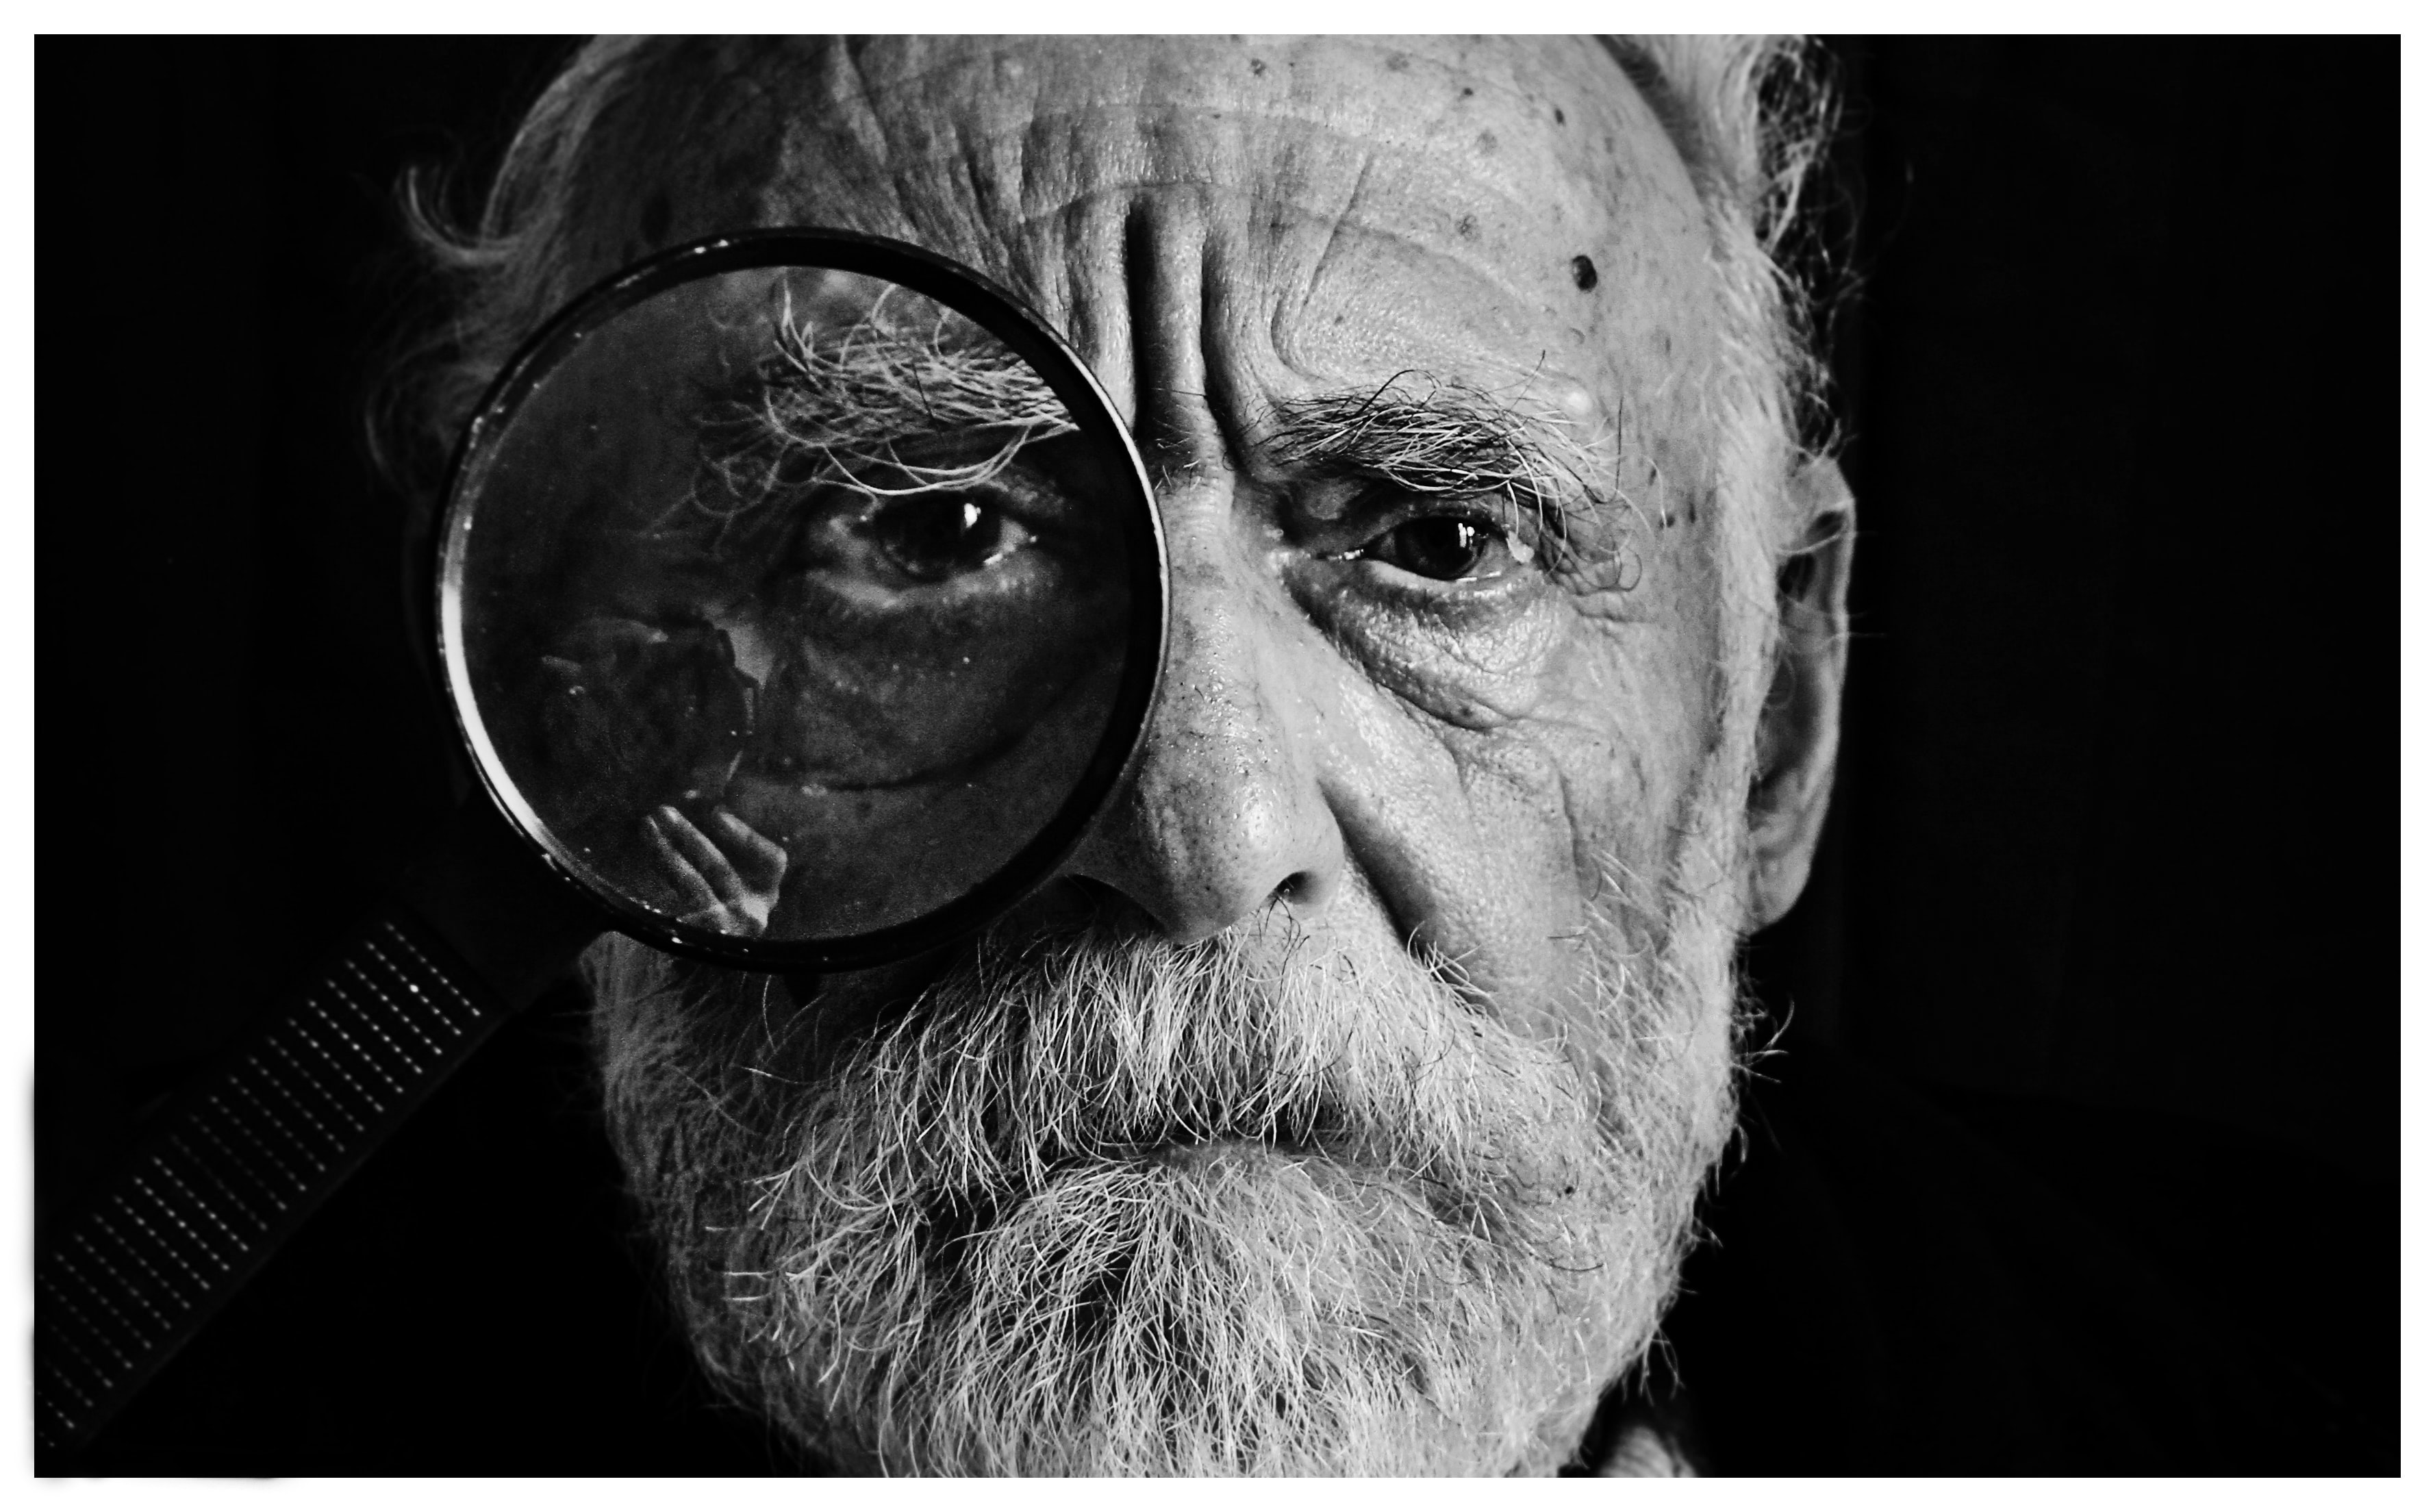 A portrait of an old man with a beard looking through a magnifying glass.